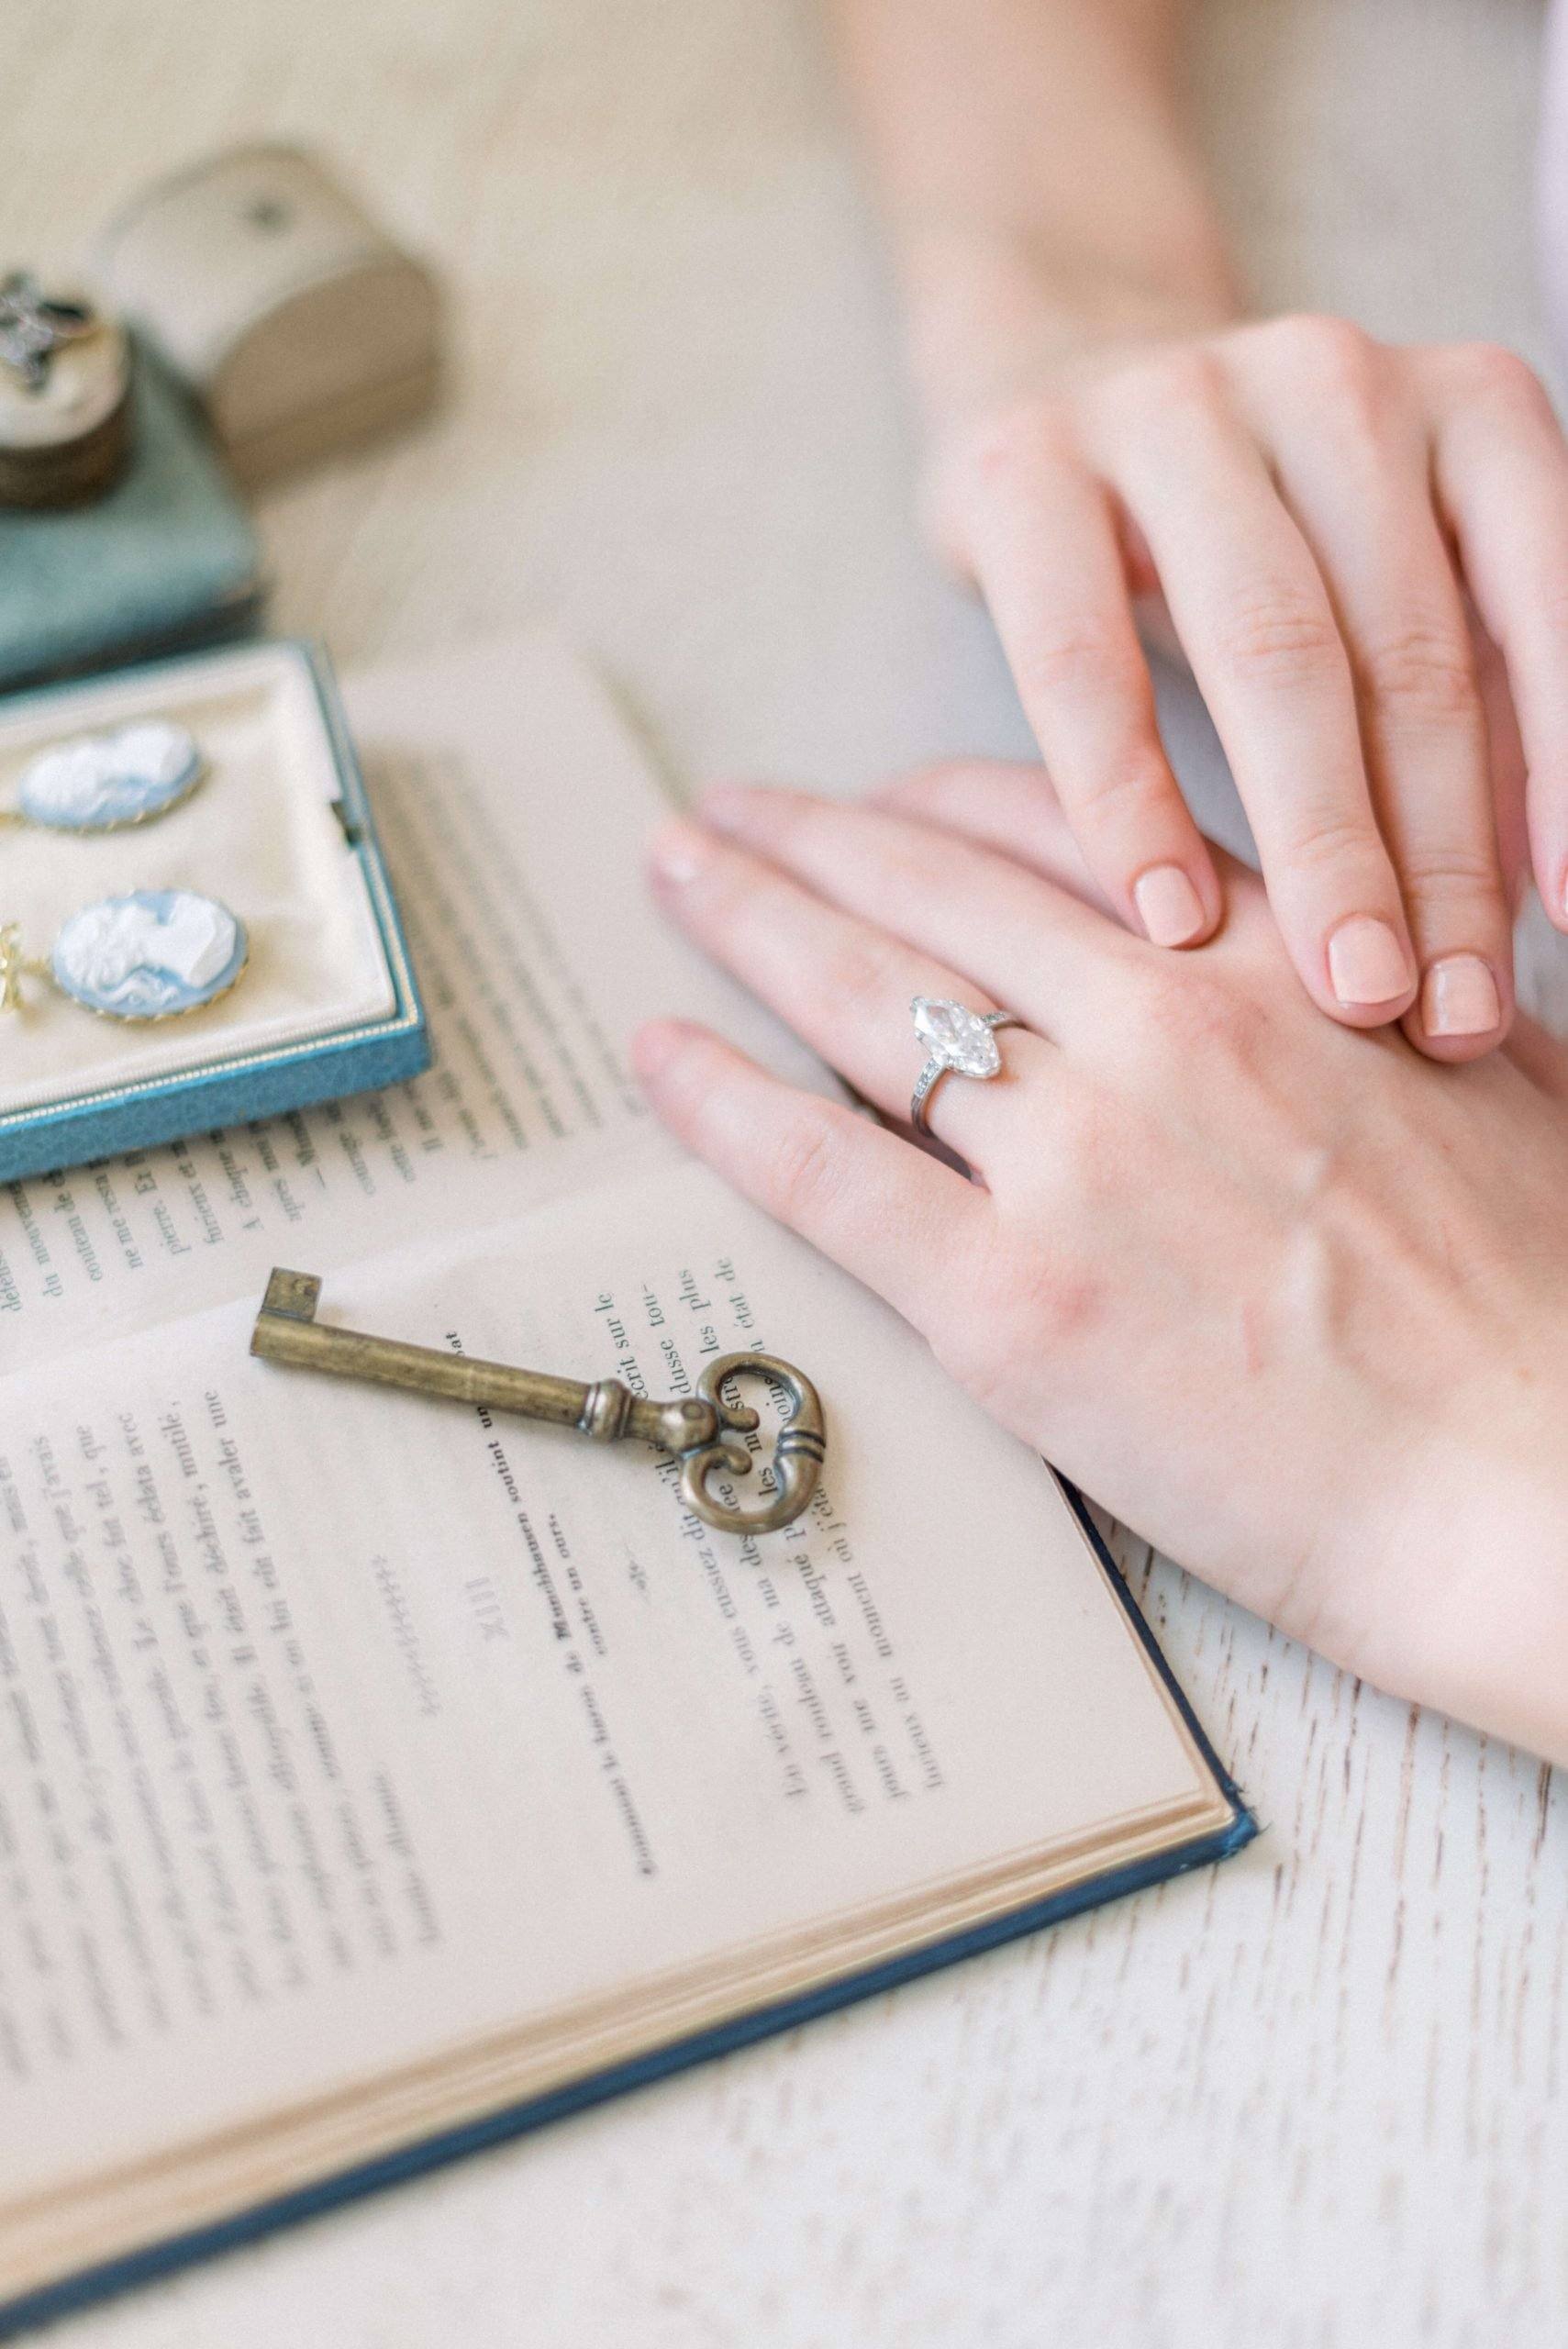 Practical Things to Do After You Get Engaged  Photo: Victor Barbone Madrid Ring featuring a large 4.02 carat Moval Diamond. Engagement Ring is from the Art Deco Era, circa 1920. Styled by East Made Co, shot at Hedsor House, Buckinghamshire United Kingdom. Photo by Cristina Ilao